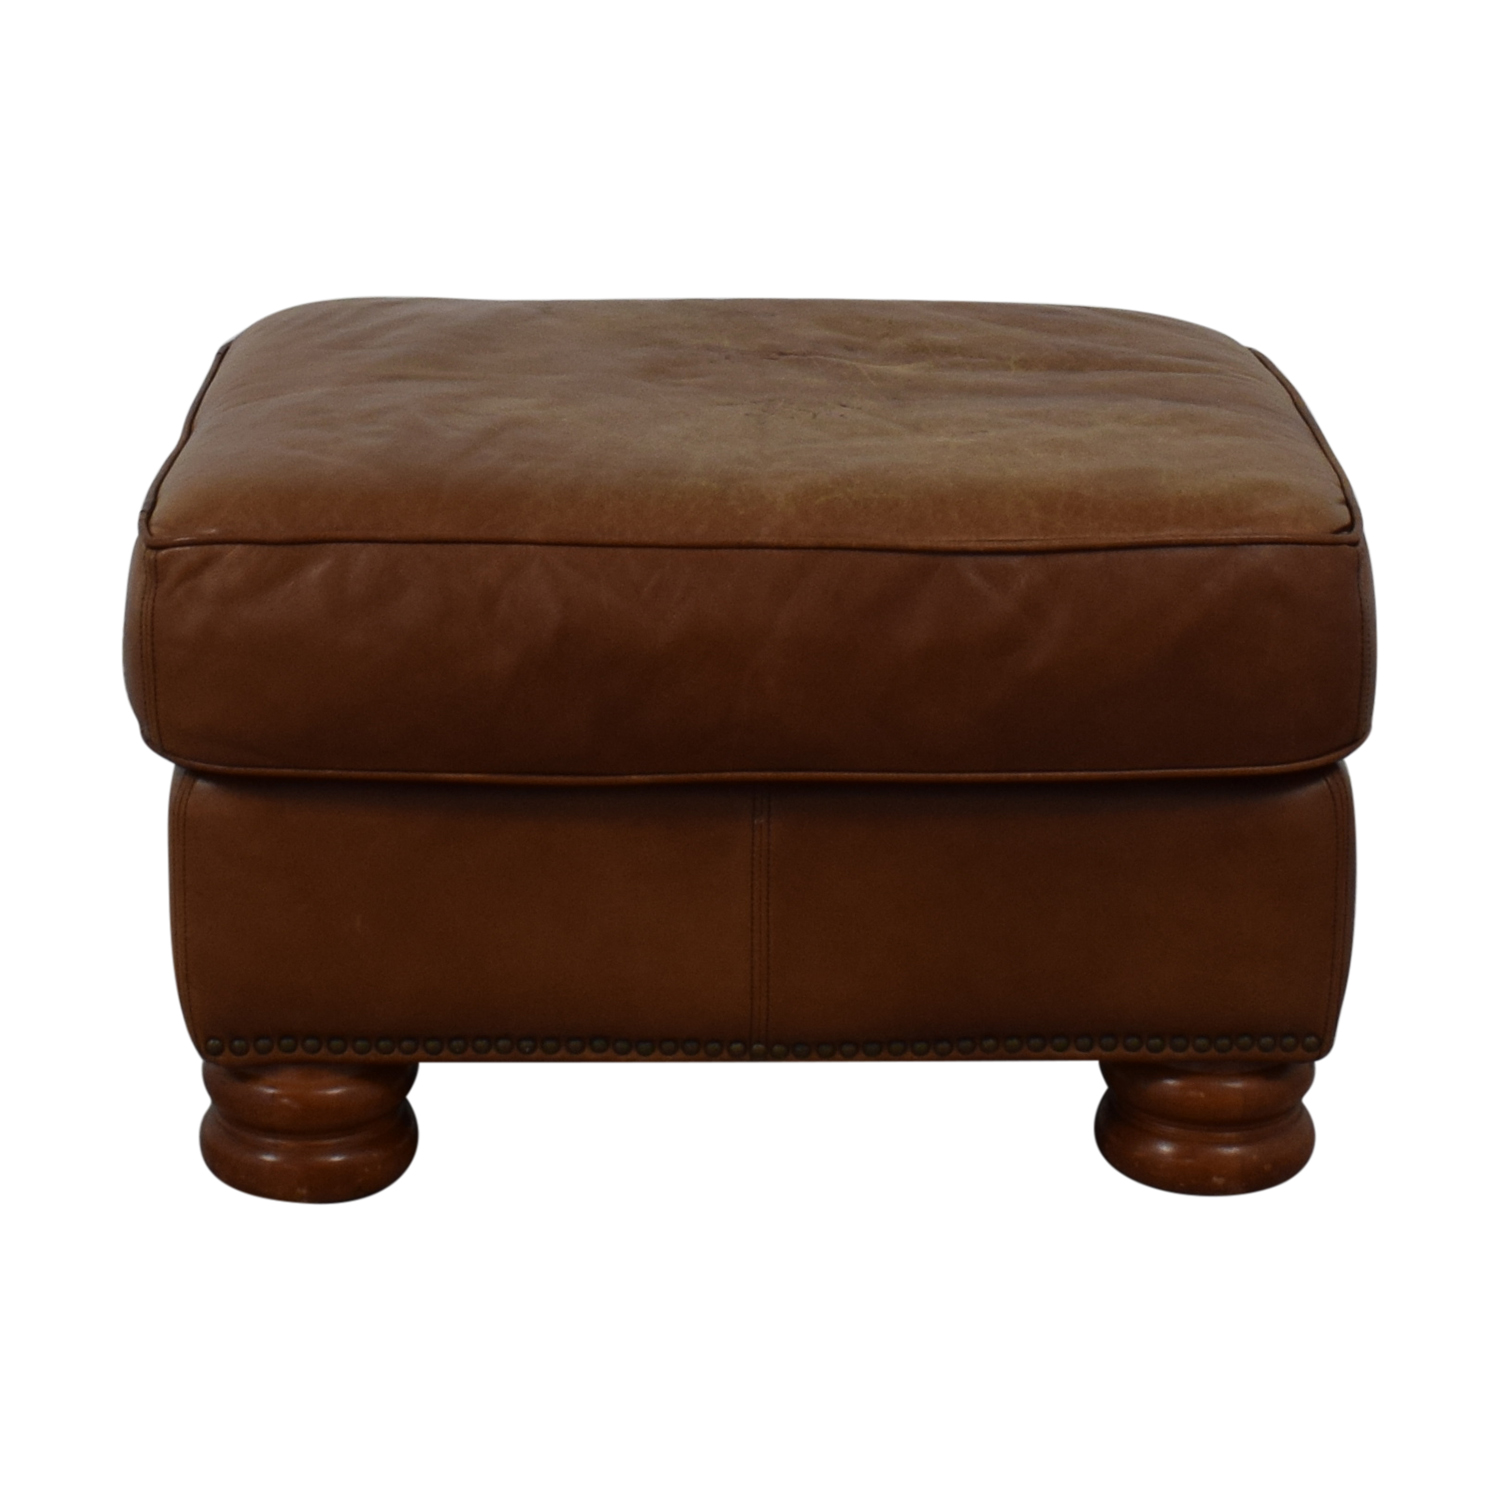 Thomasville Thomasville Brown Leather Ottoman used